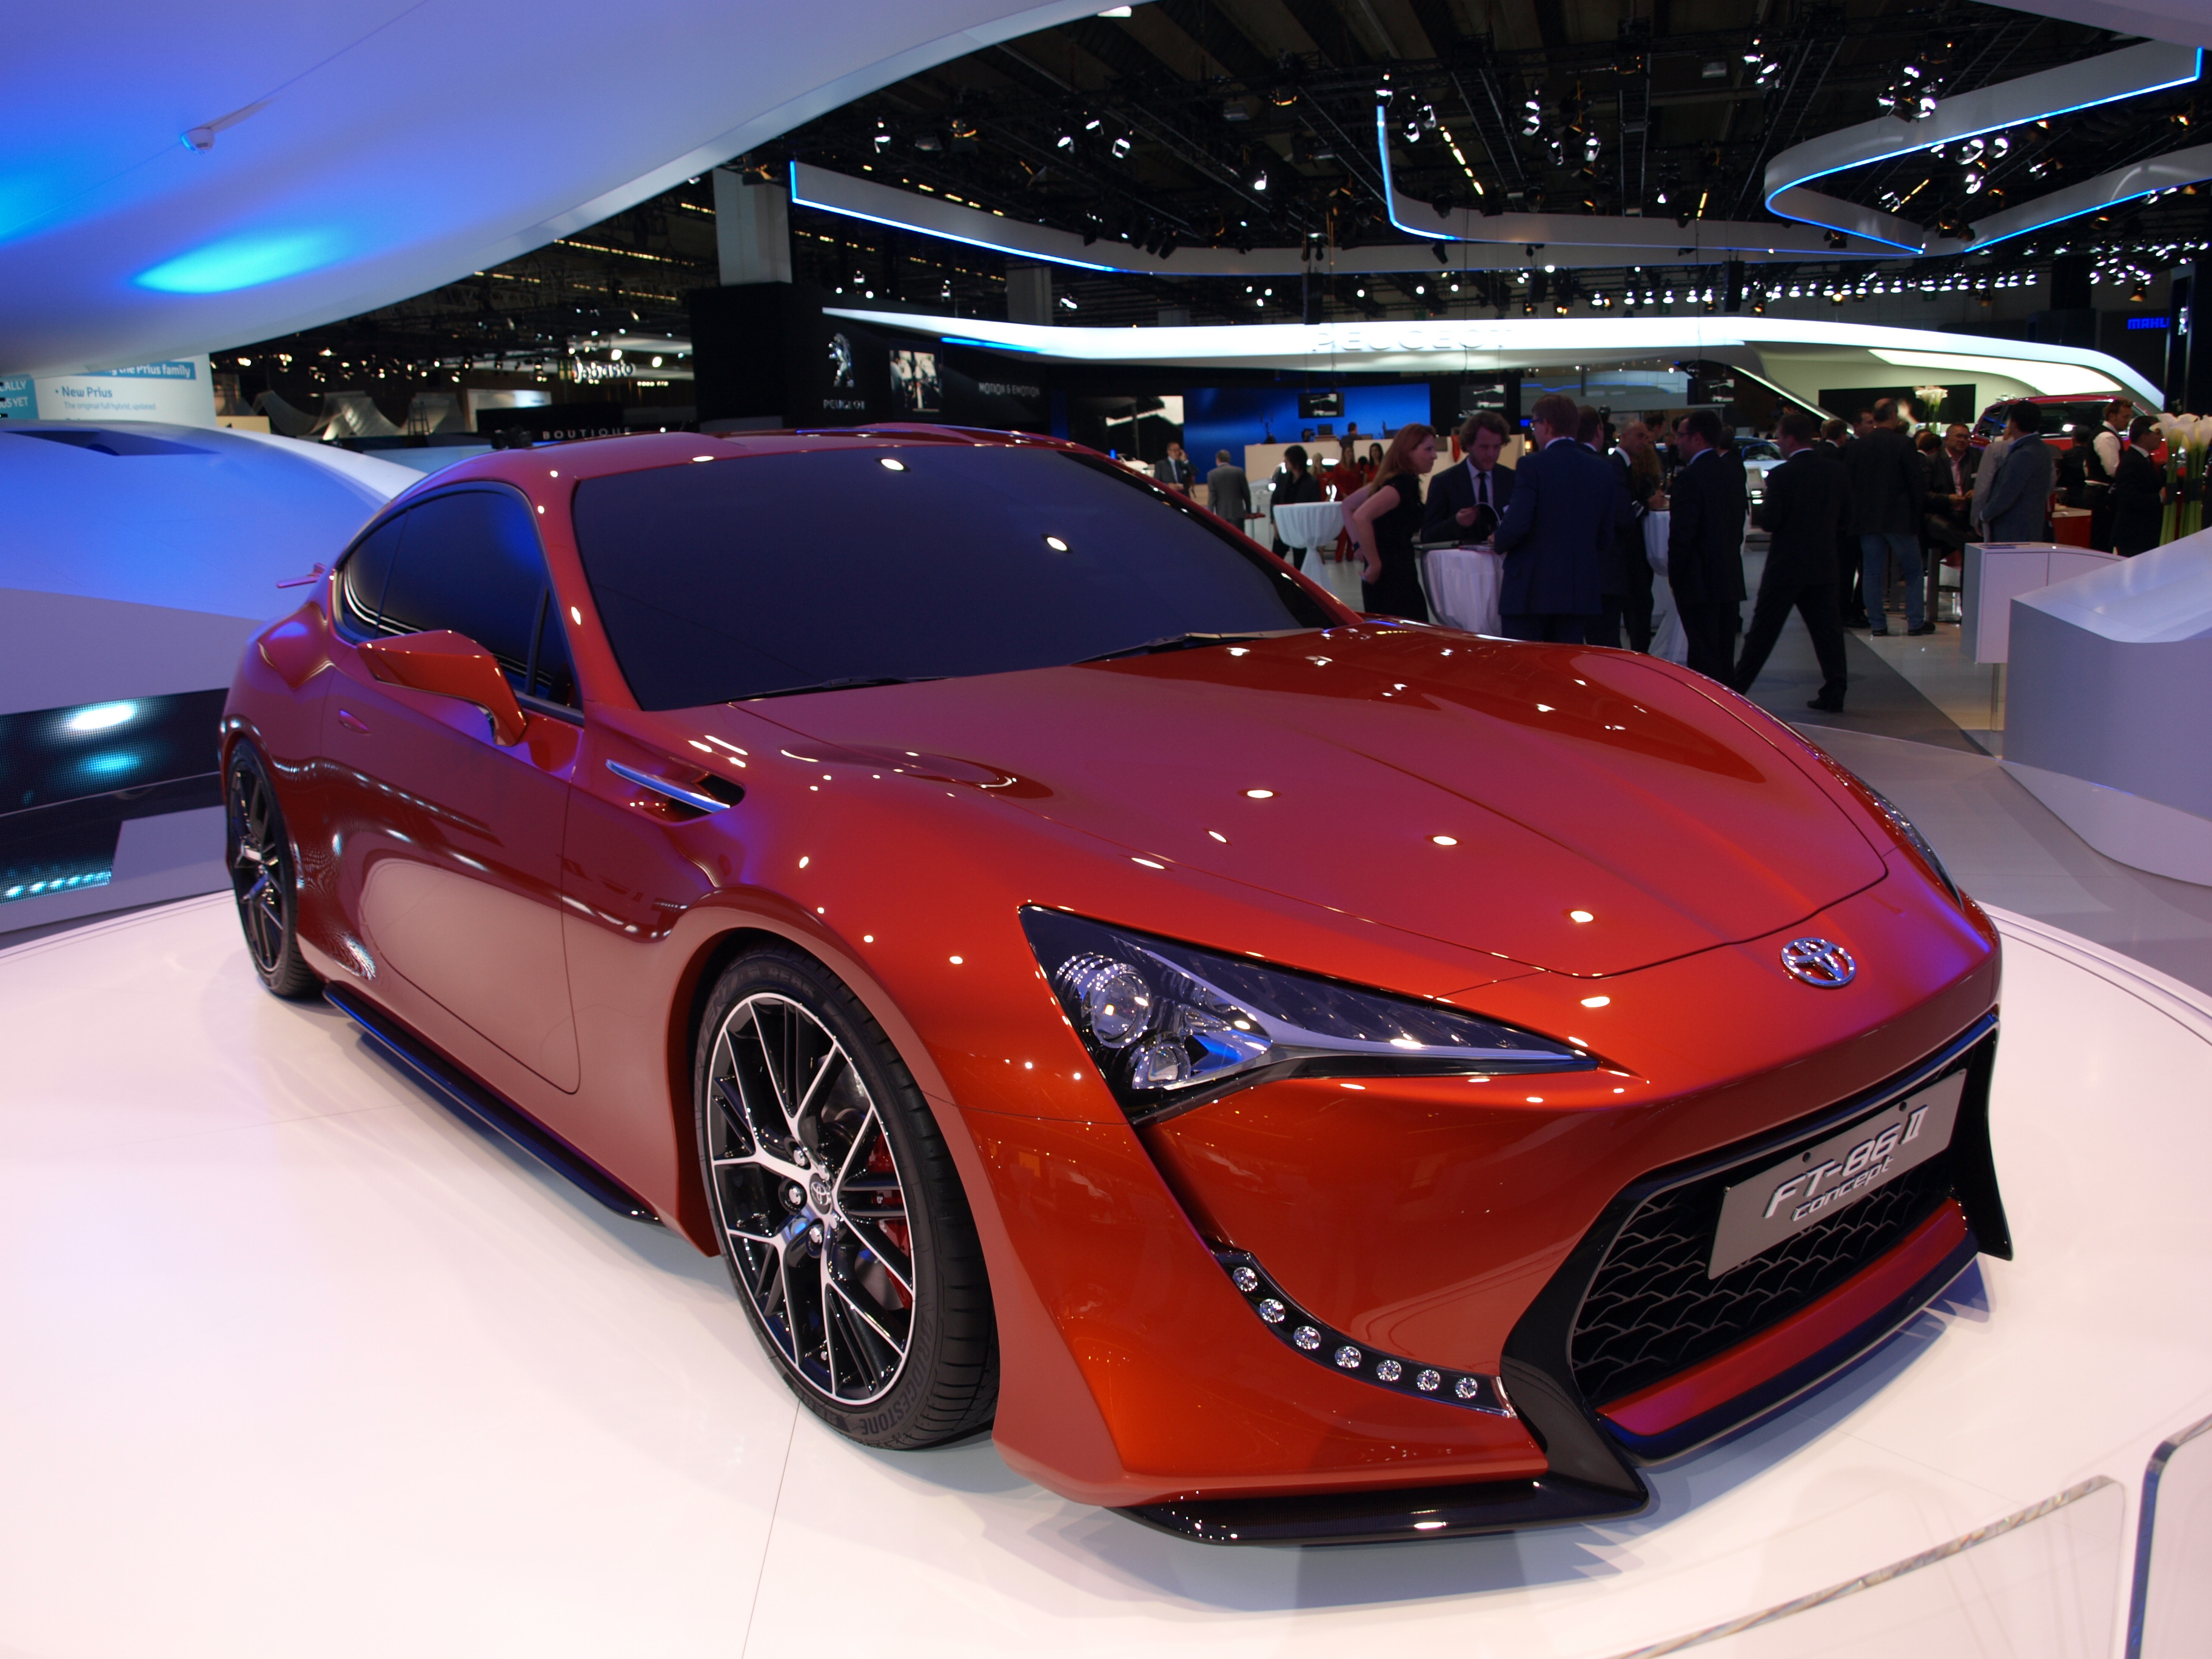 http://images.caradisiac.com/images/2/4/7/0/72470/S0-Francfort-2011-Toyota-FT-86-II-concept-237752.jpg